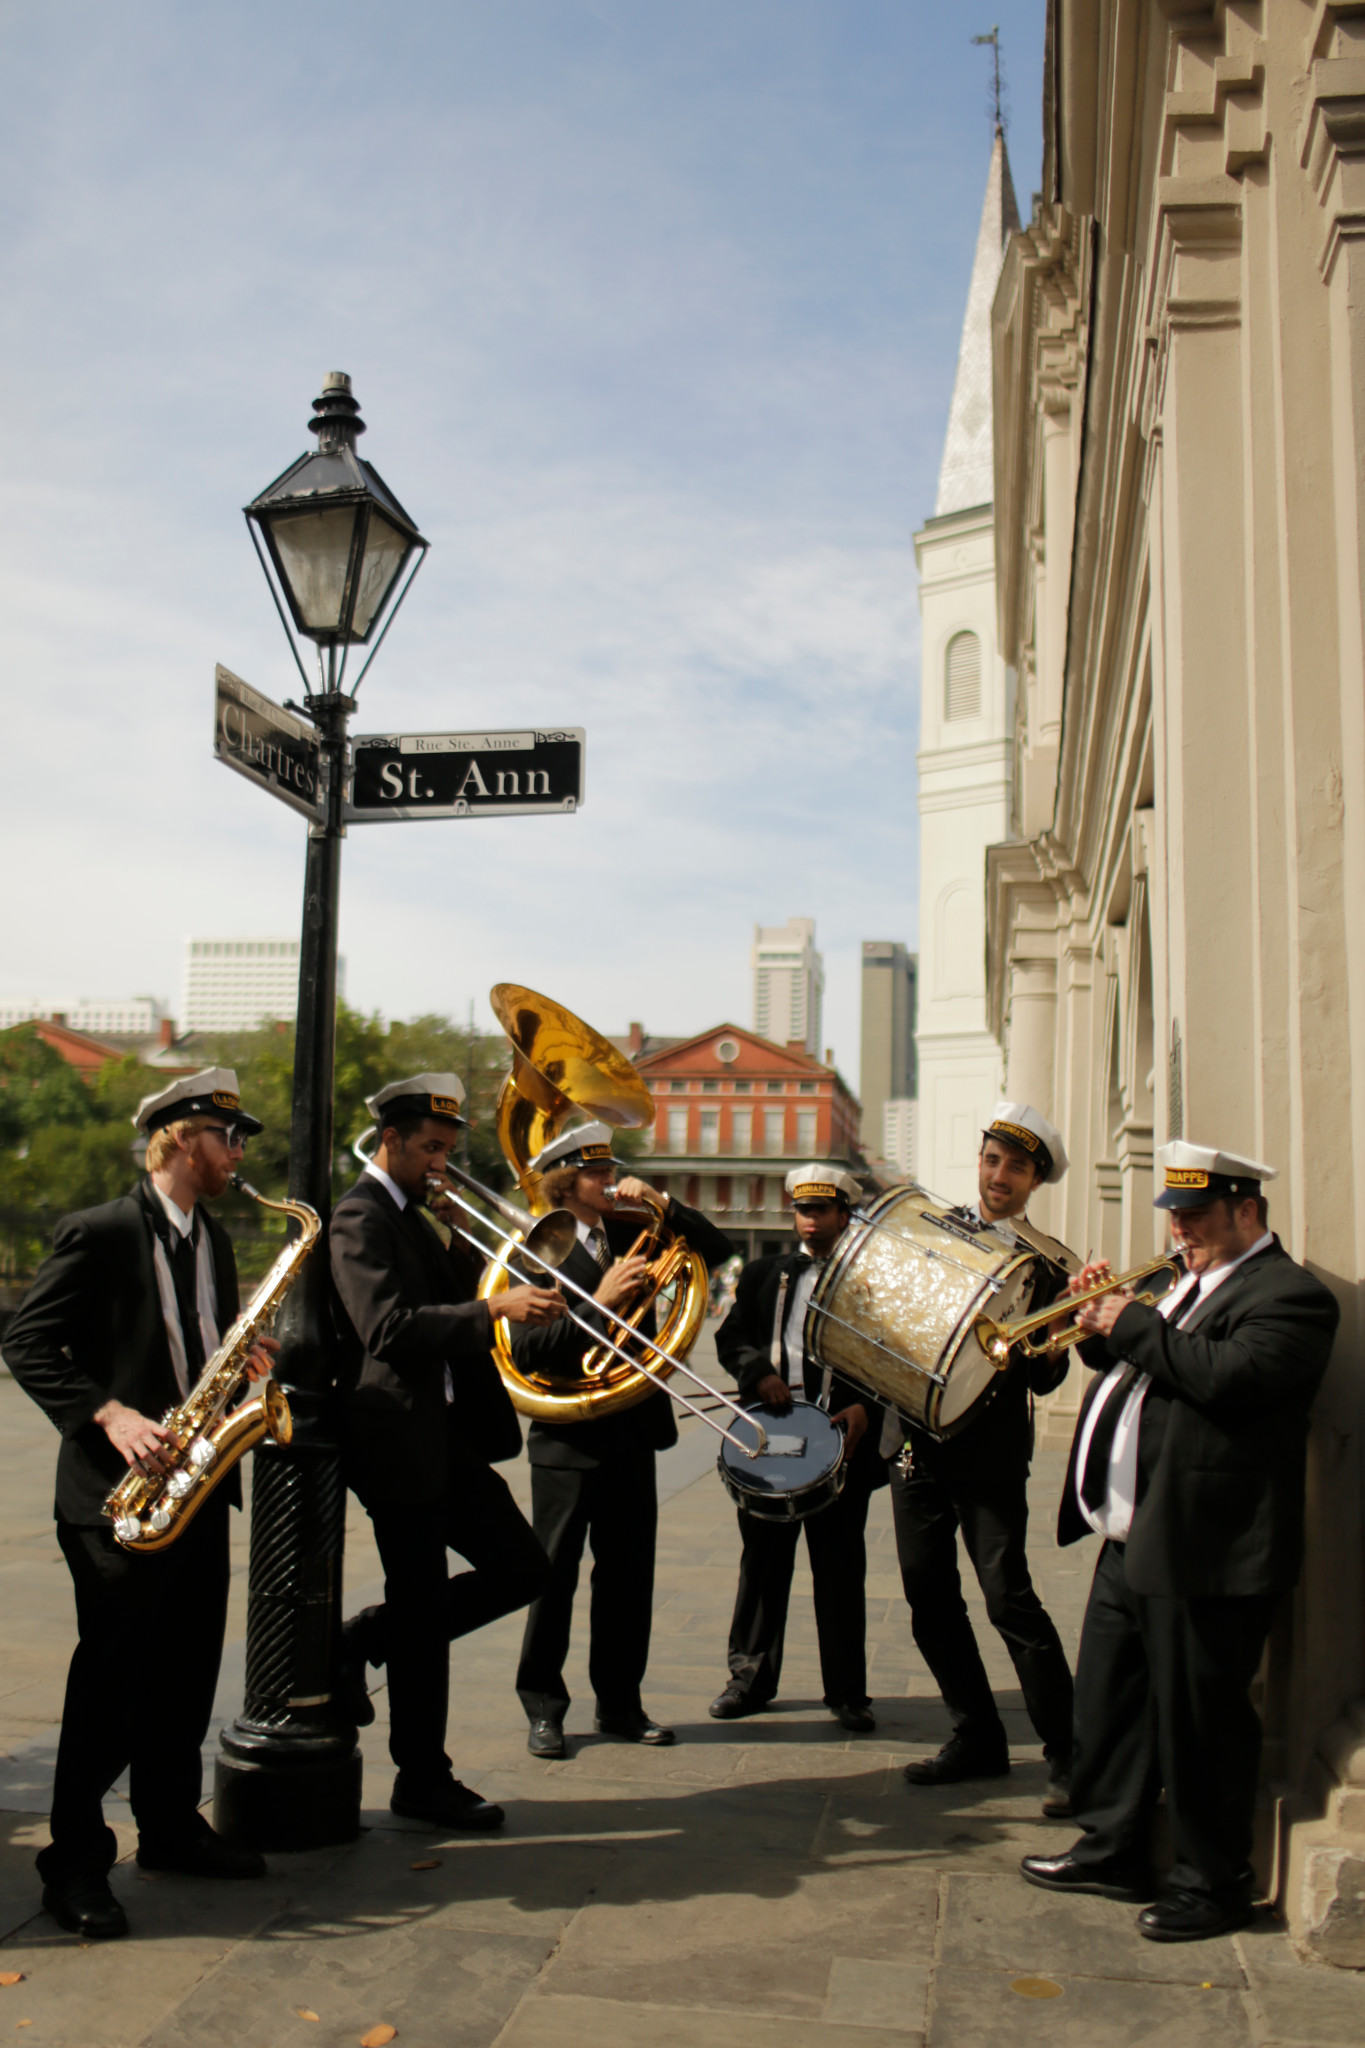 New Orleans Band playing music - 2019 AAOA Annual Meeting